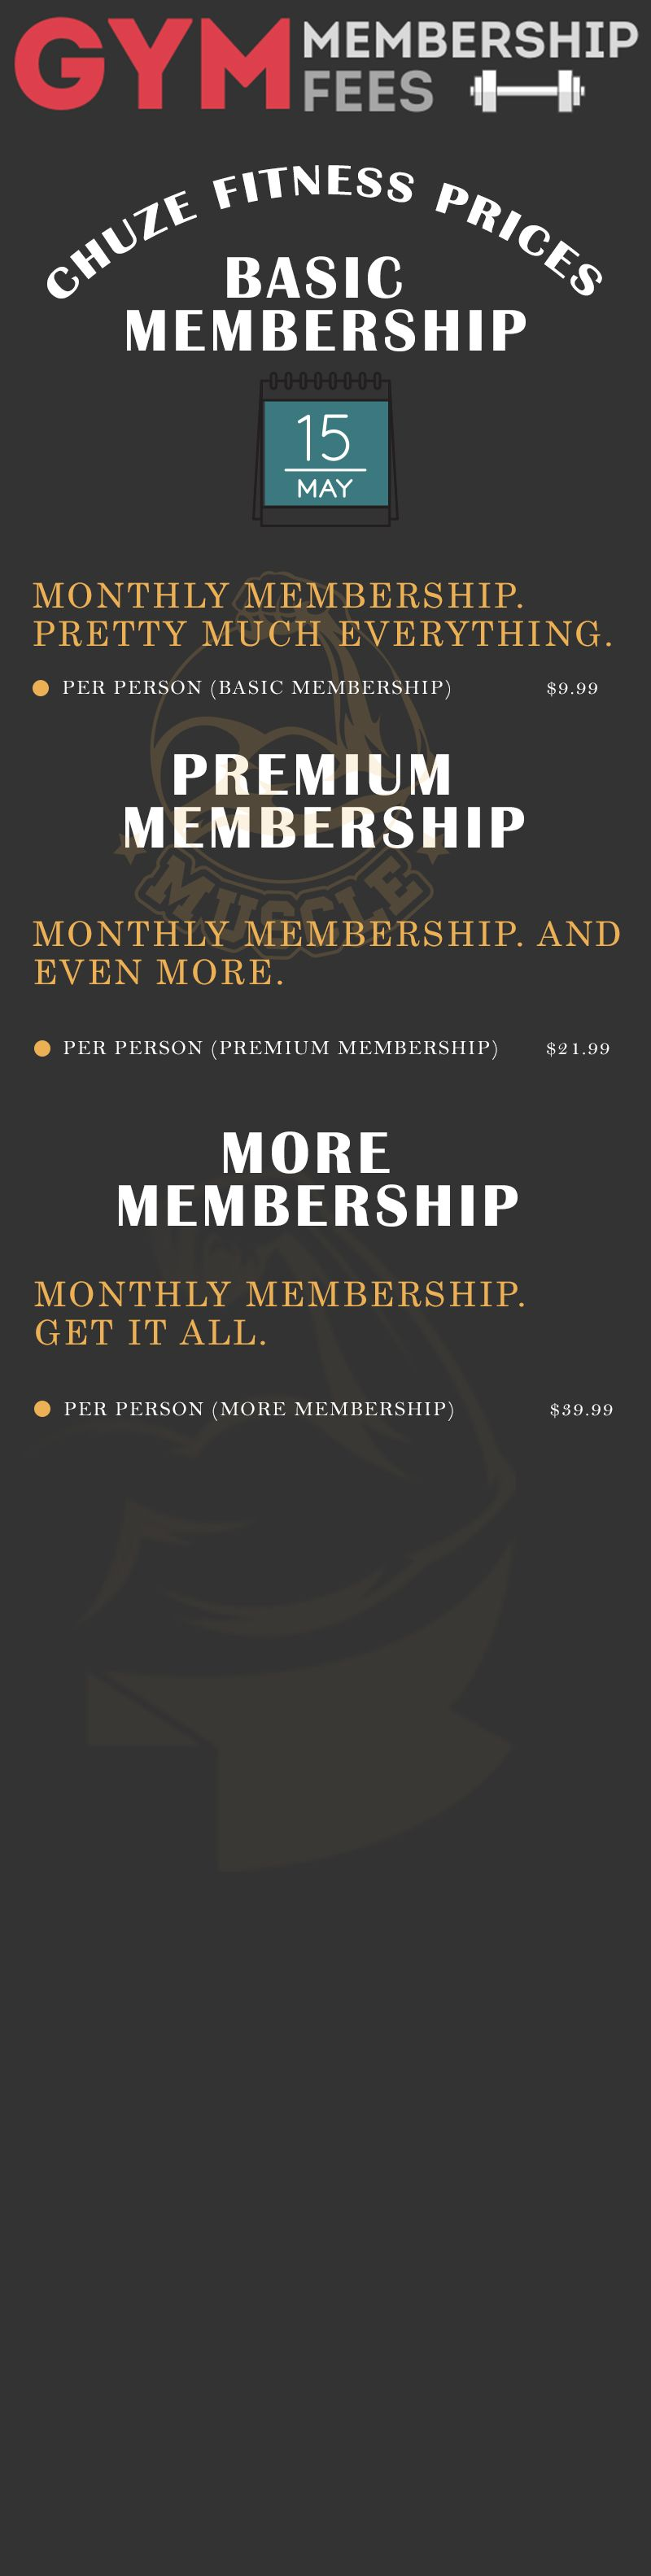 Chuze Fitness Prices In 2021 Commercial Gym Gym Membership Fitness